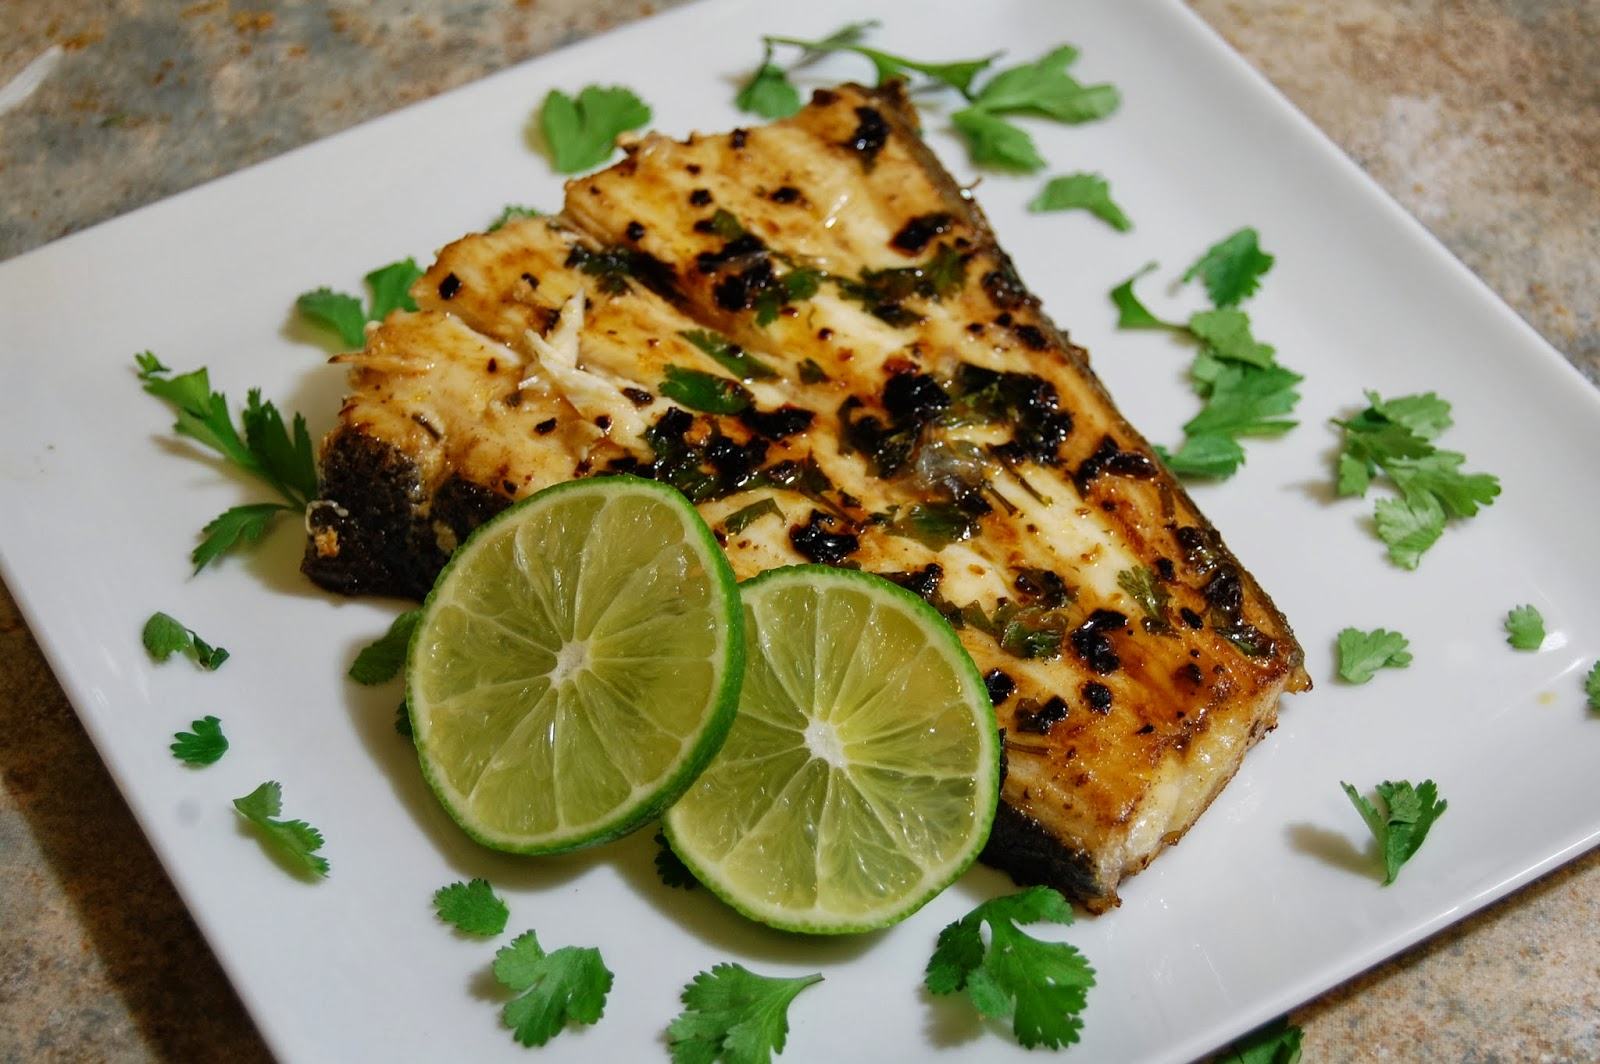 Bass marinated in lime juice